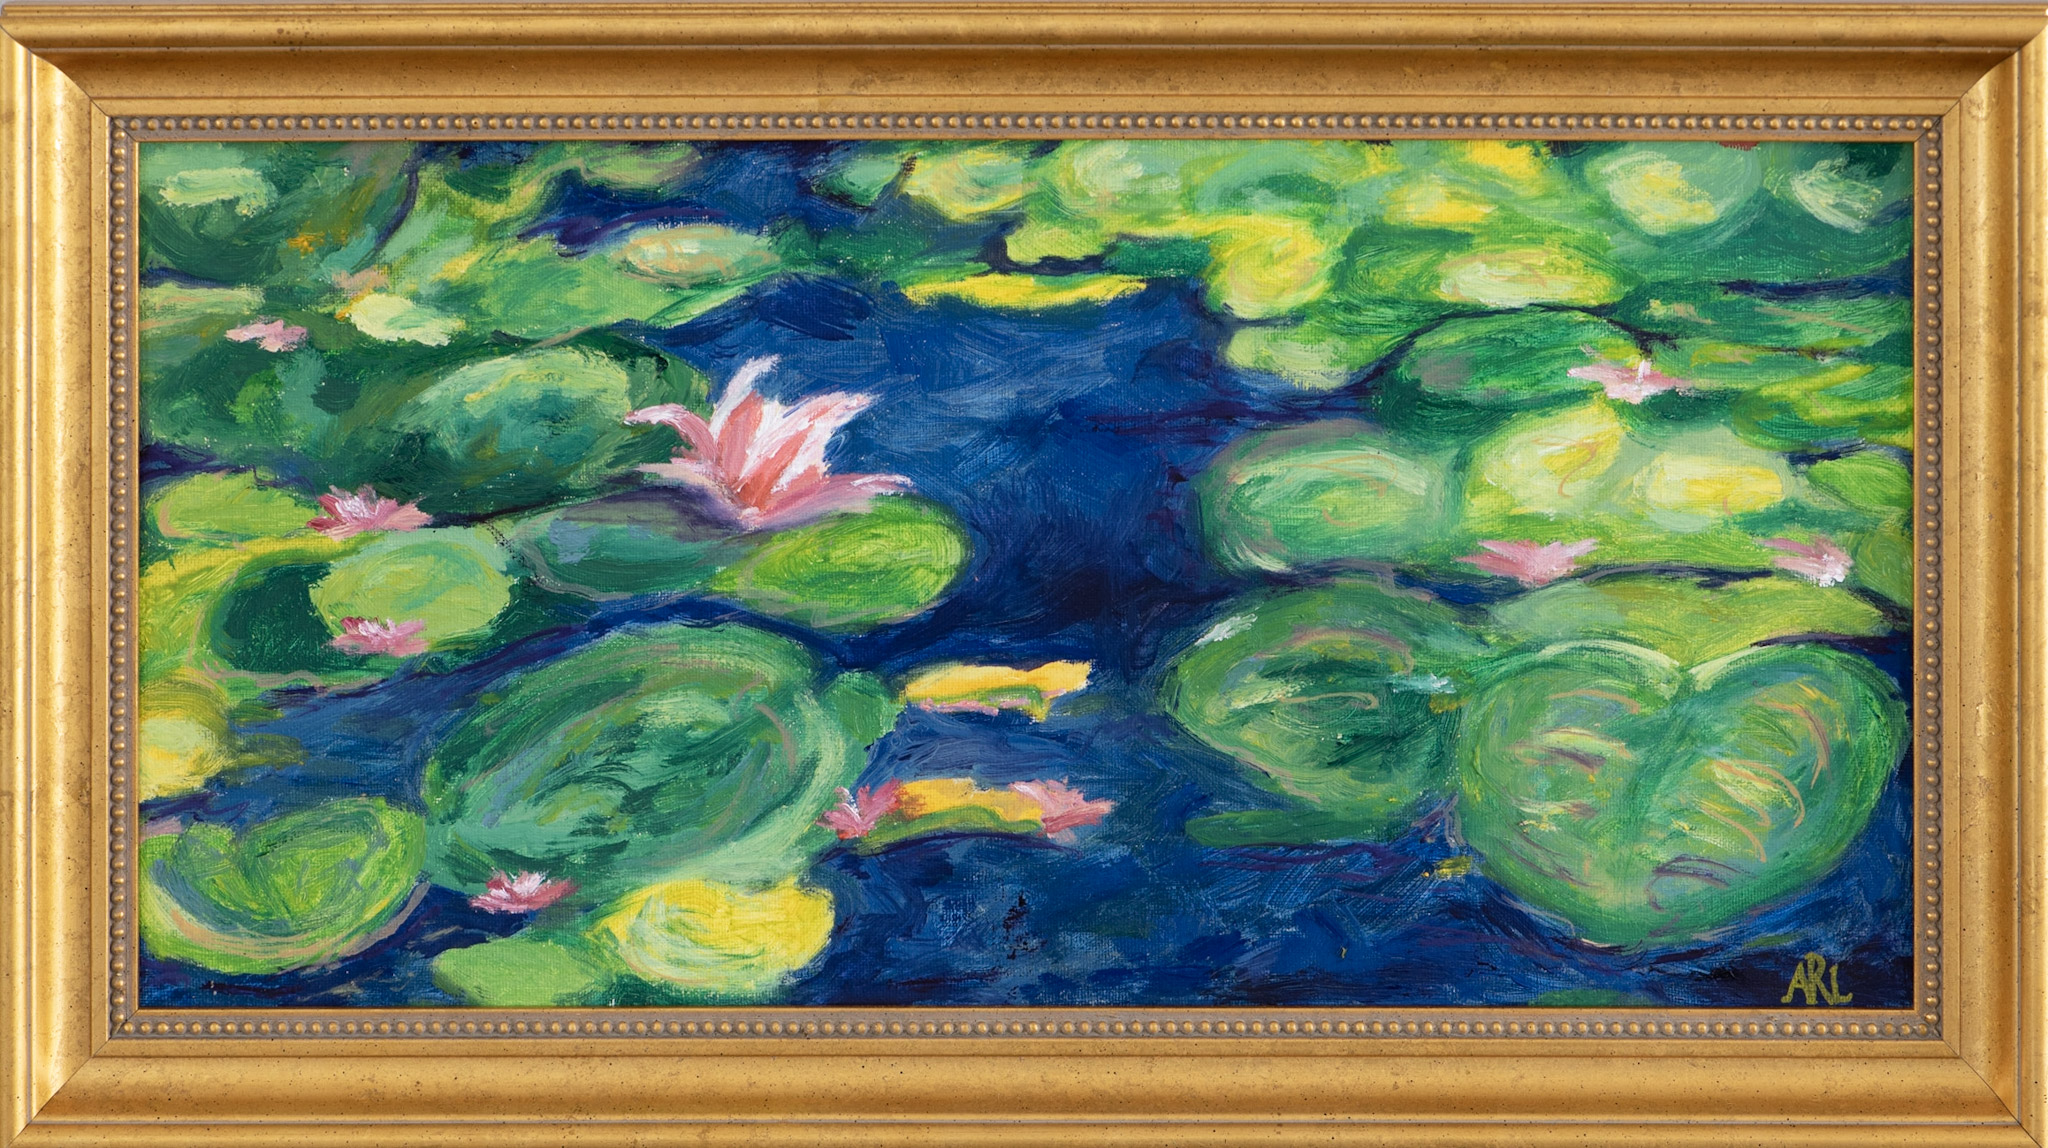 My Monet Inspired Water Lilies